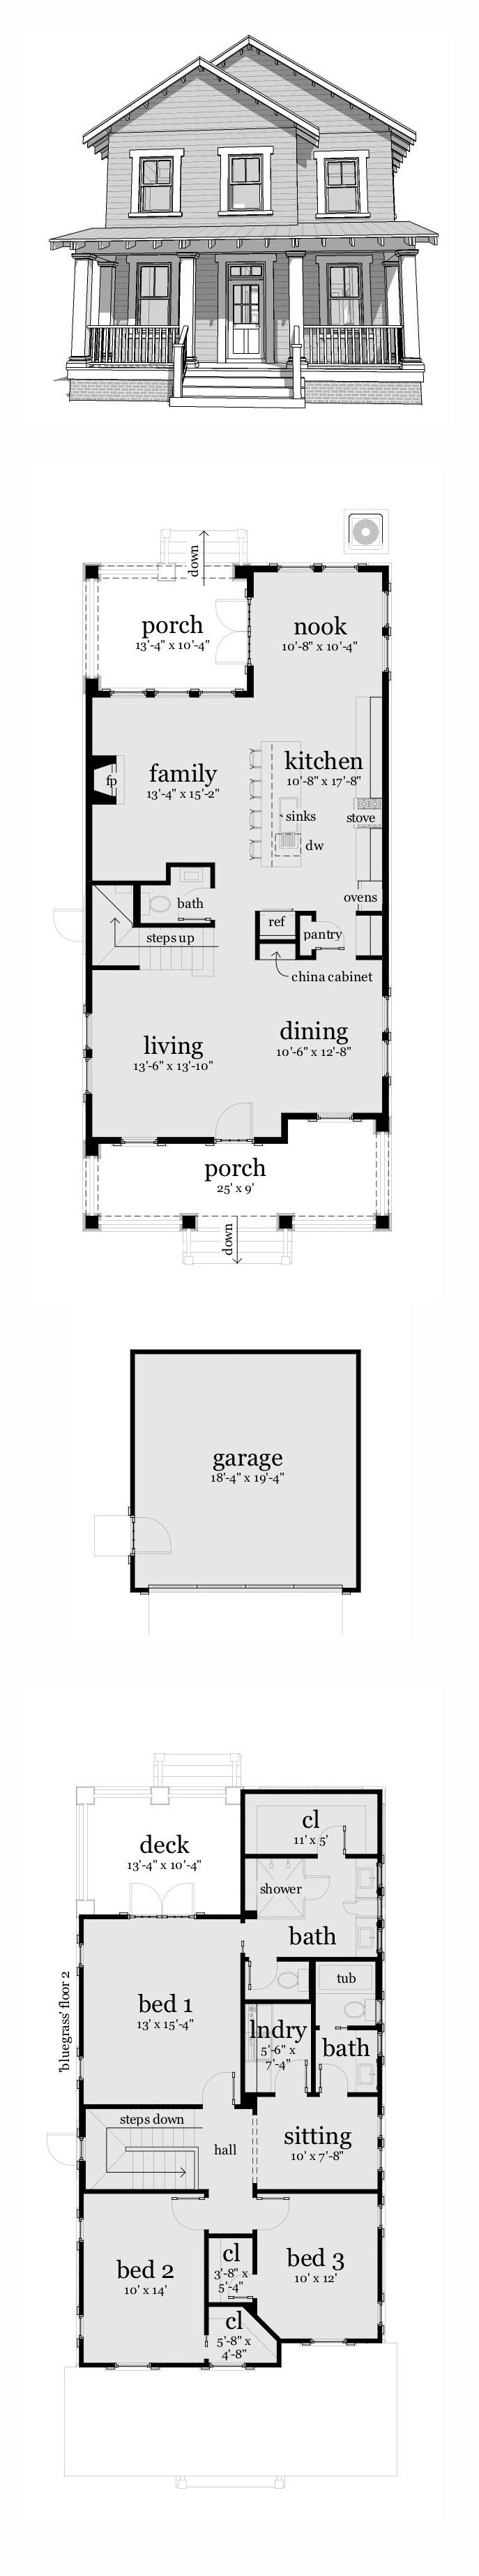 best 25 narrow house plans ideas that you will like on pinterest farmhouse house plan 70816